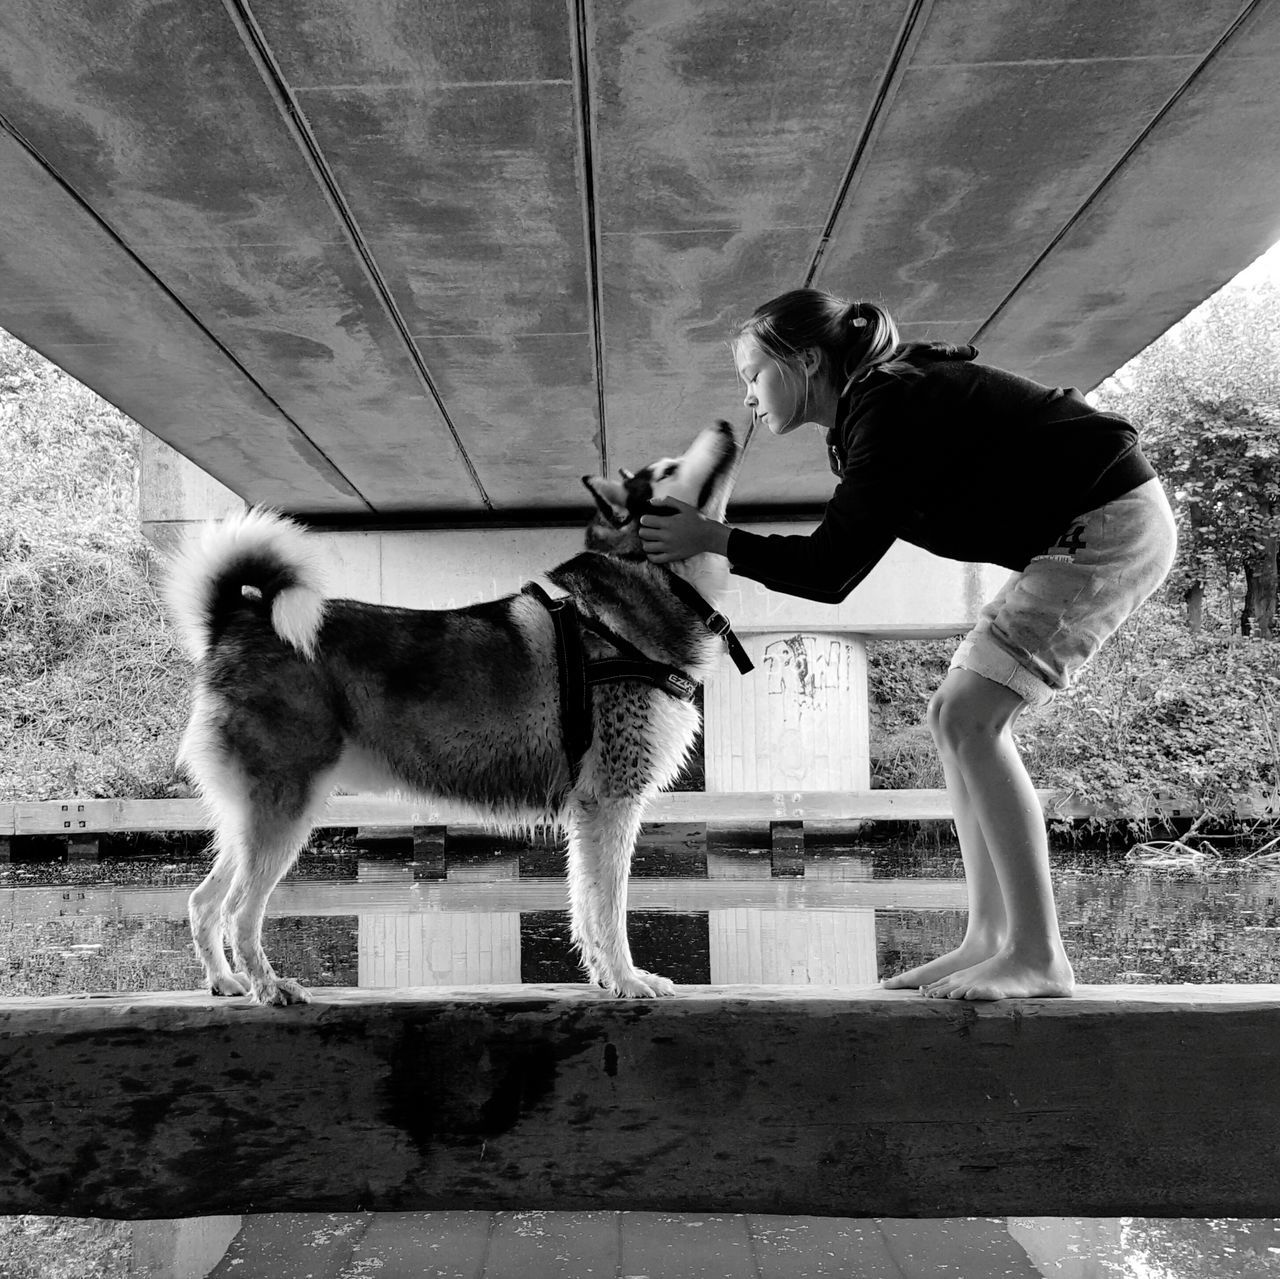 Walking The Dogs Outdoors Husky ♡ Canal Water Daughter Balance Bridge